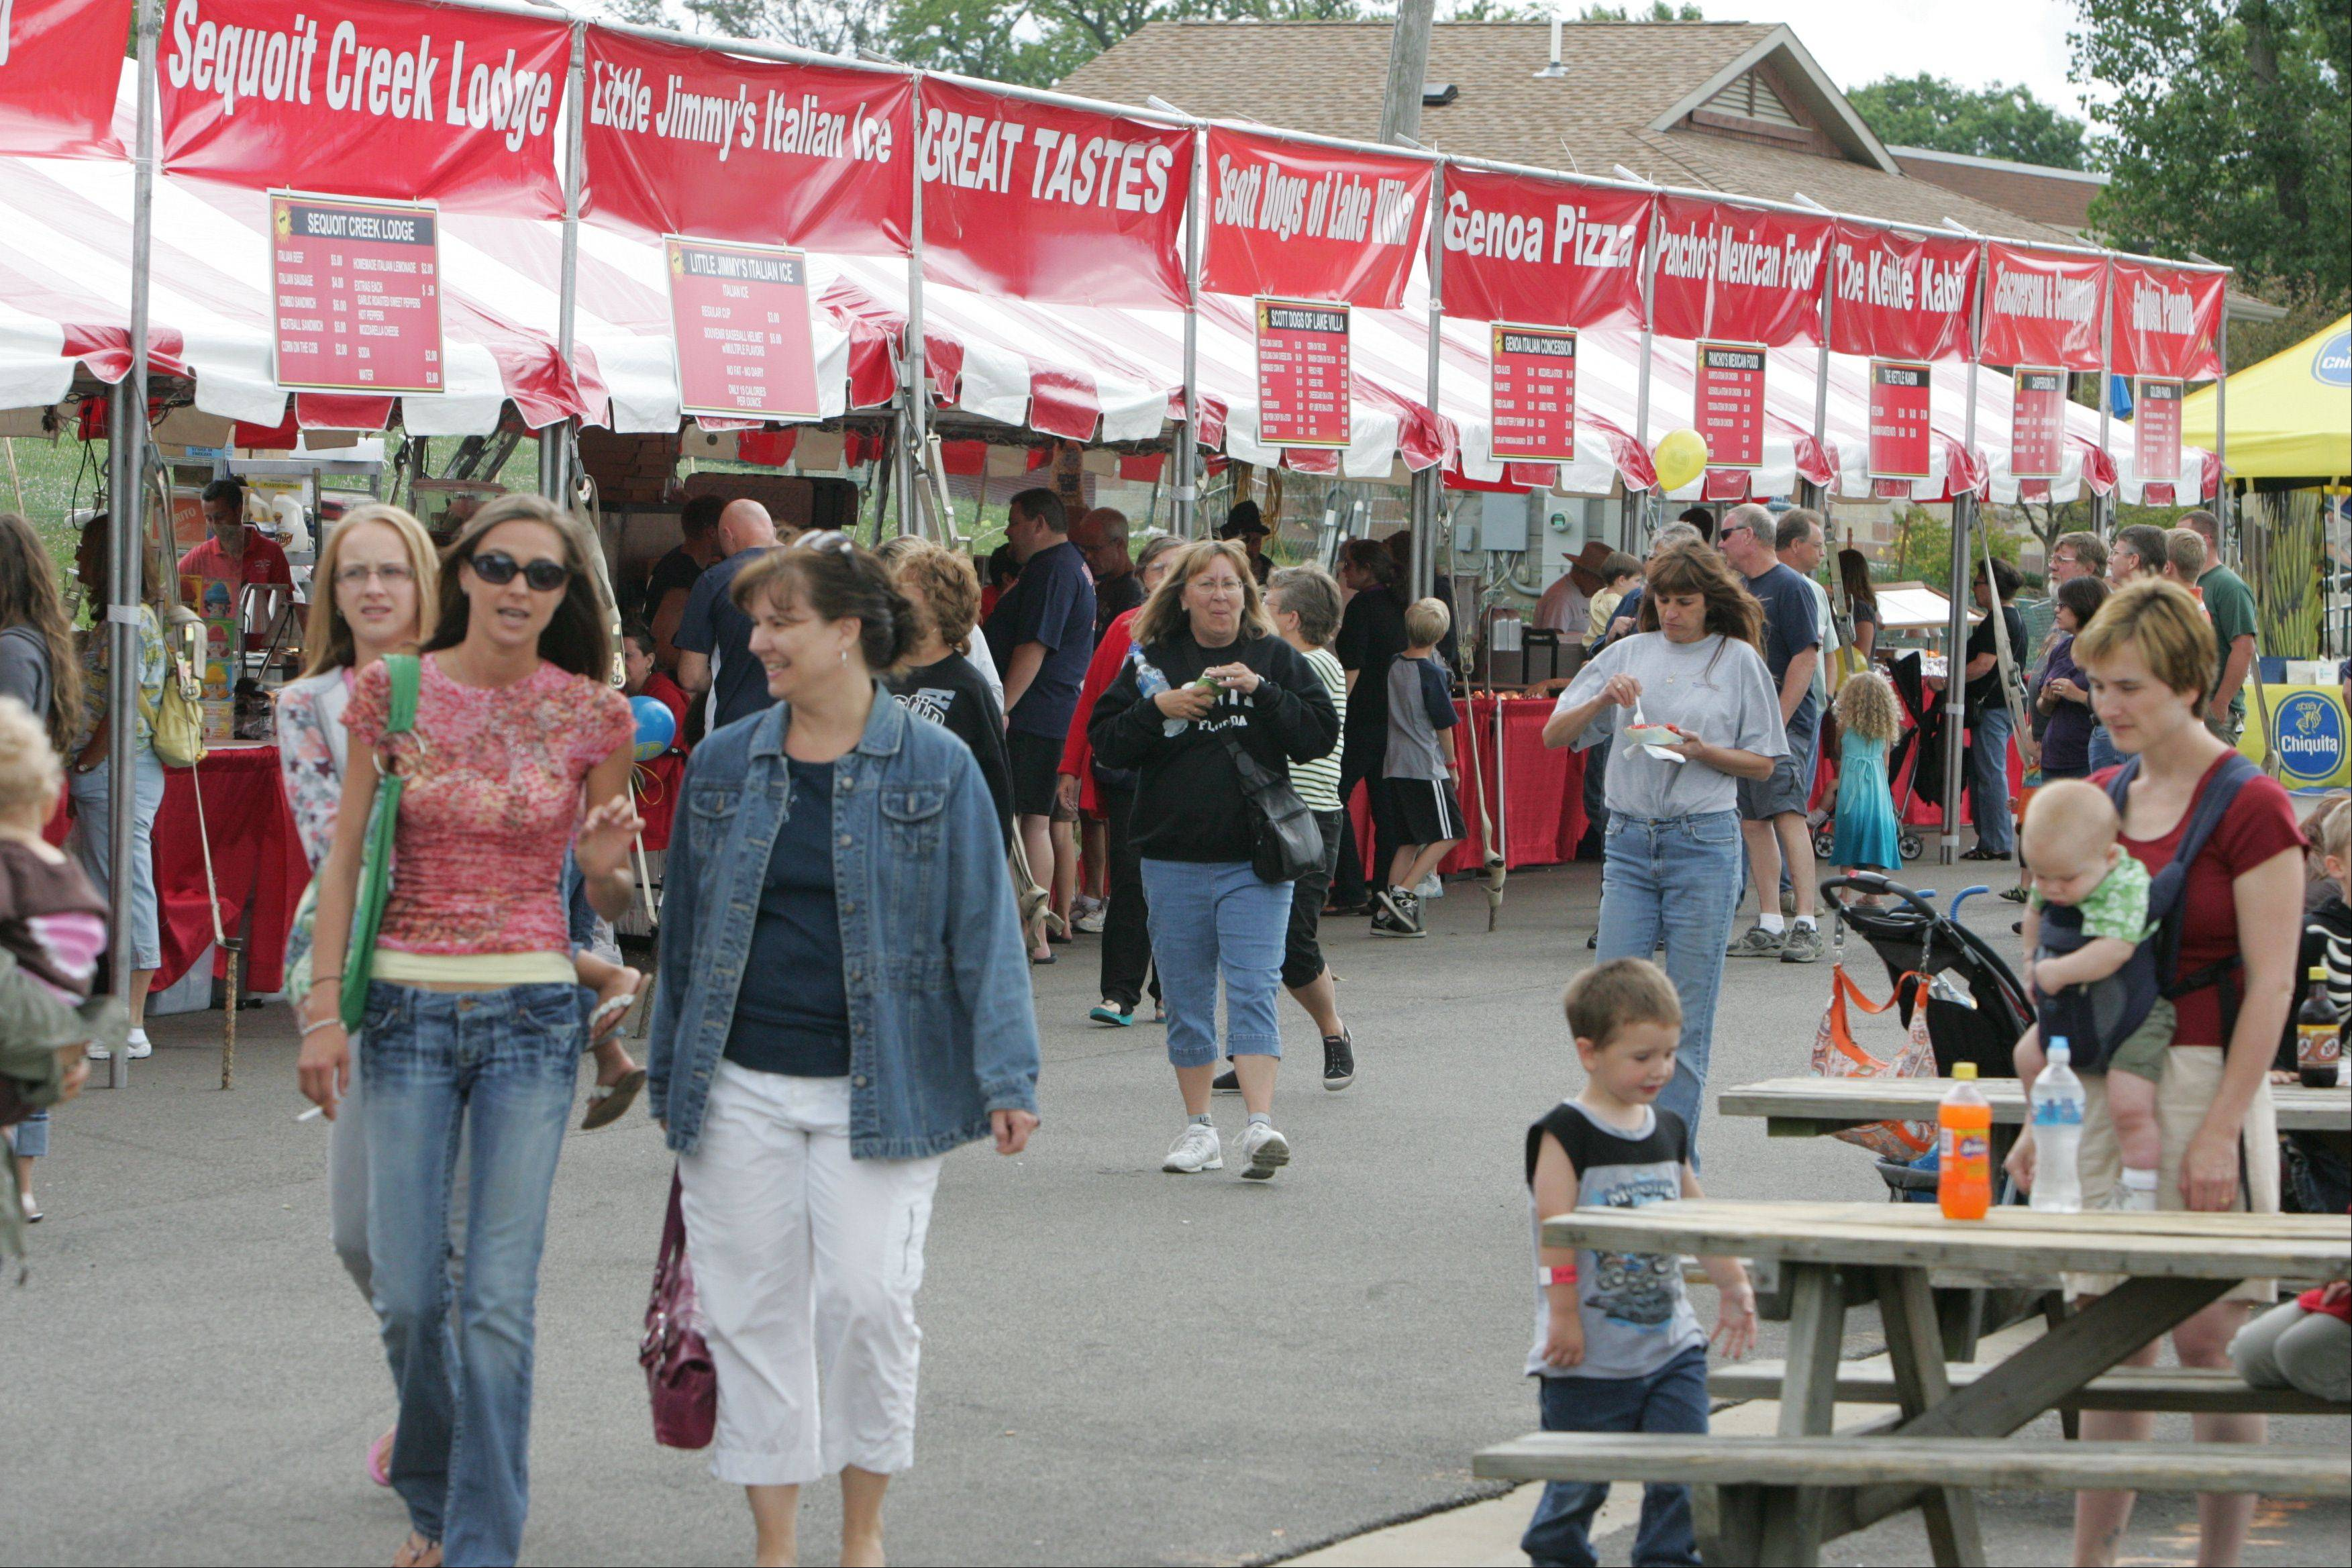 Antioch's Taste of Summer festival kicks off Thursday, July 19.